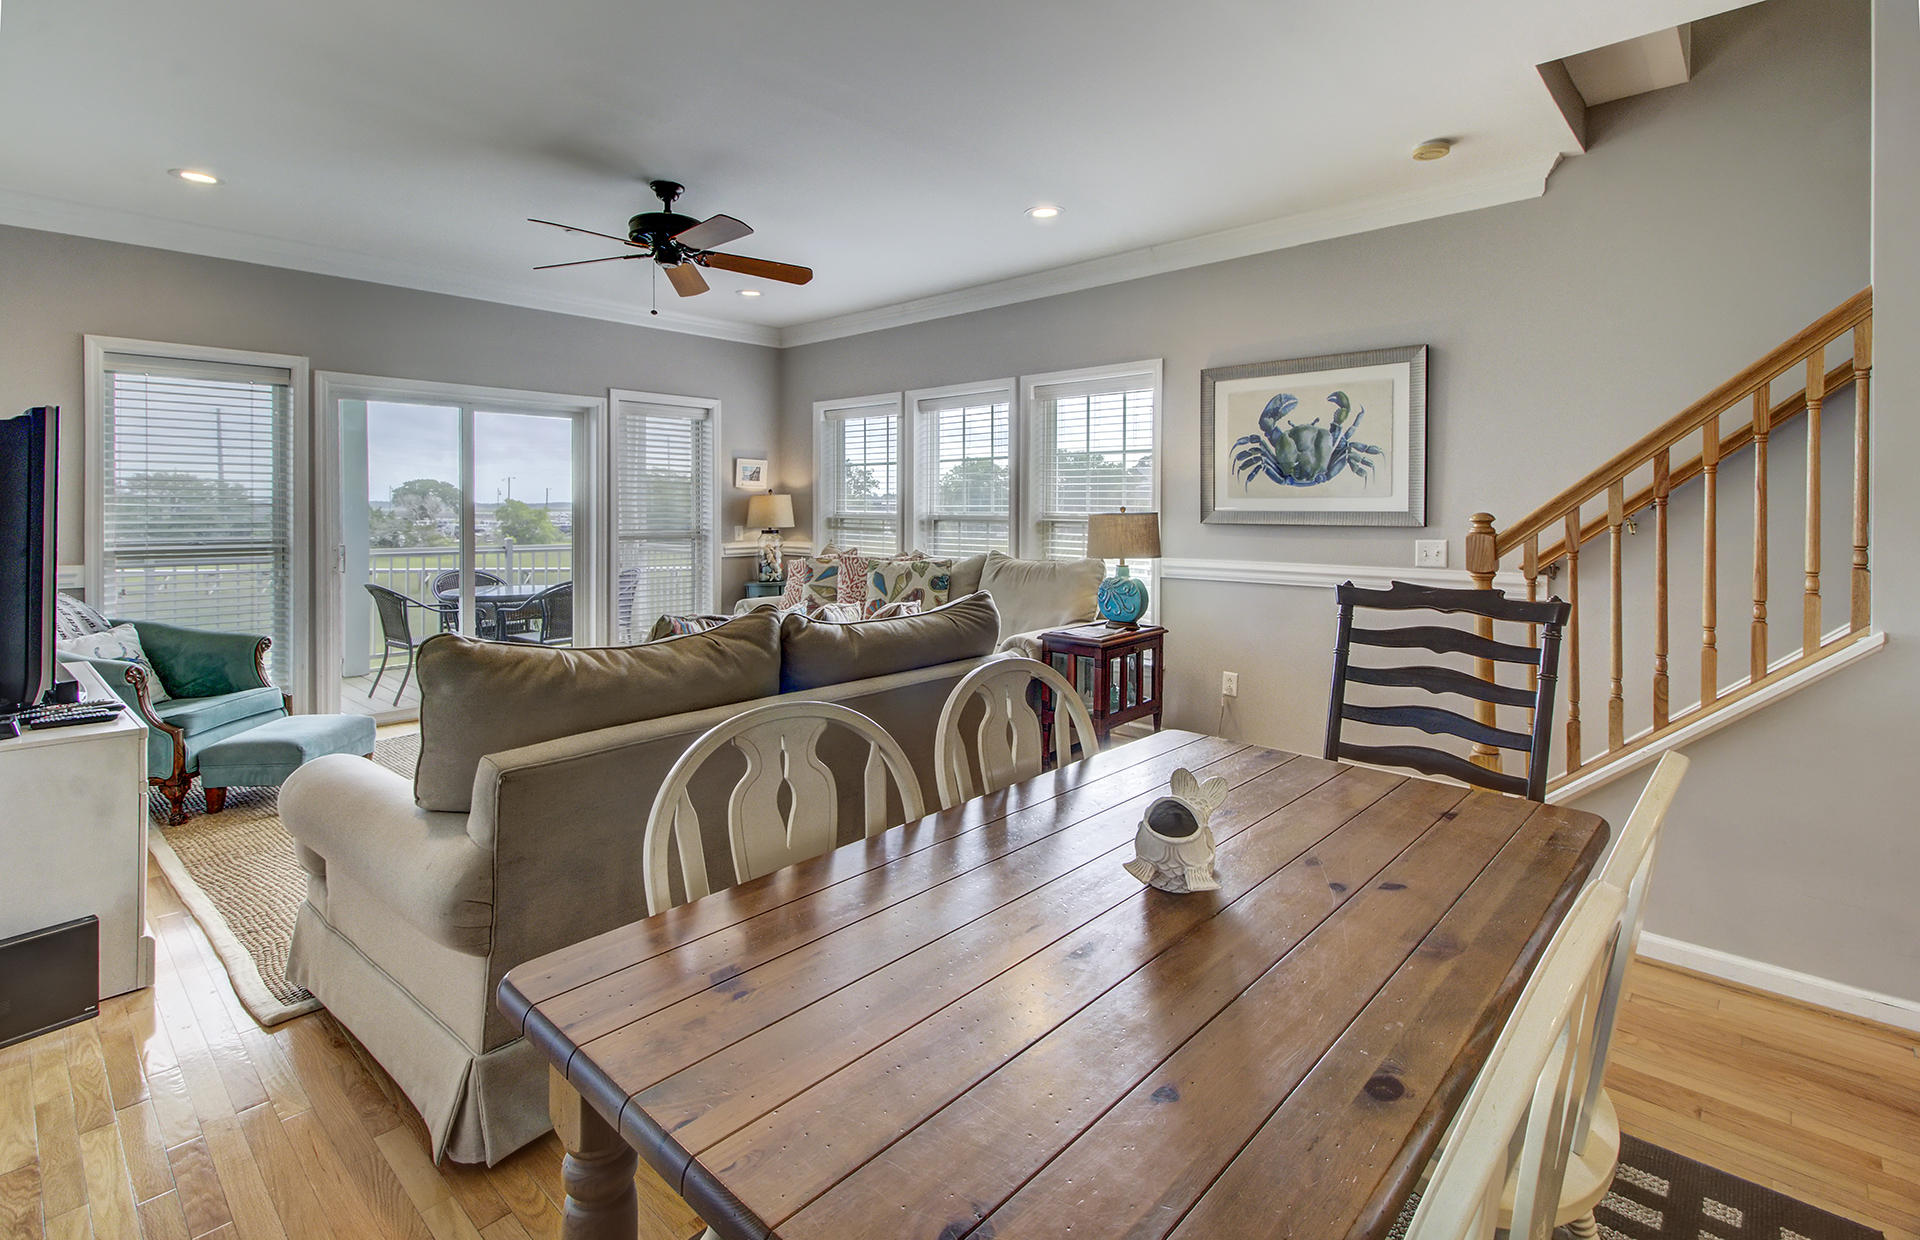 Waters Edge Homes For Sale - 80 2nd, Folly Beach, SC - 13